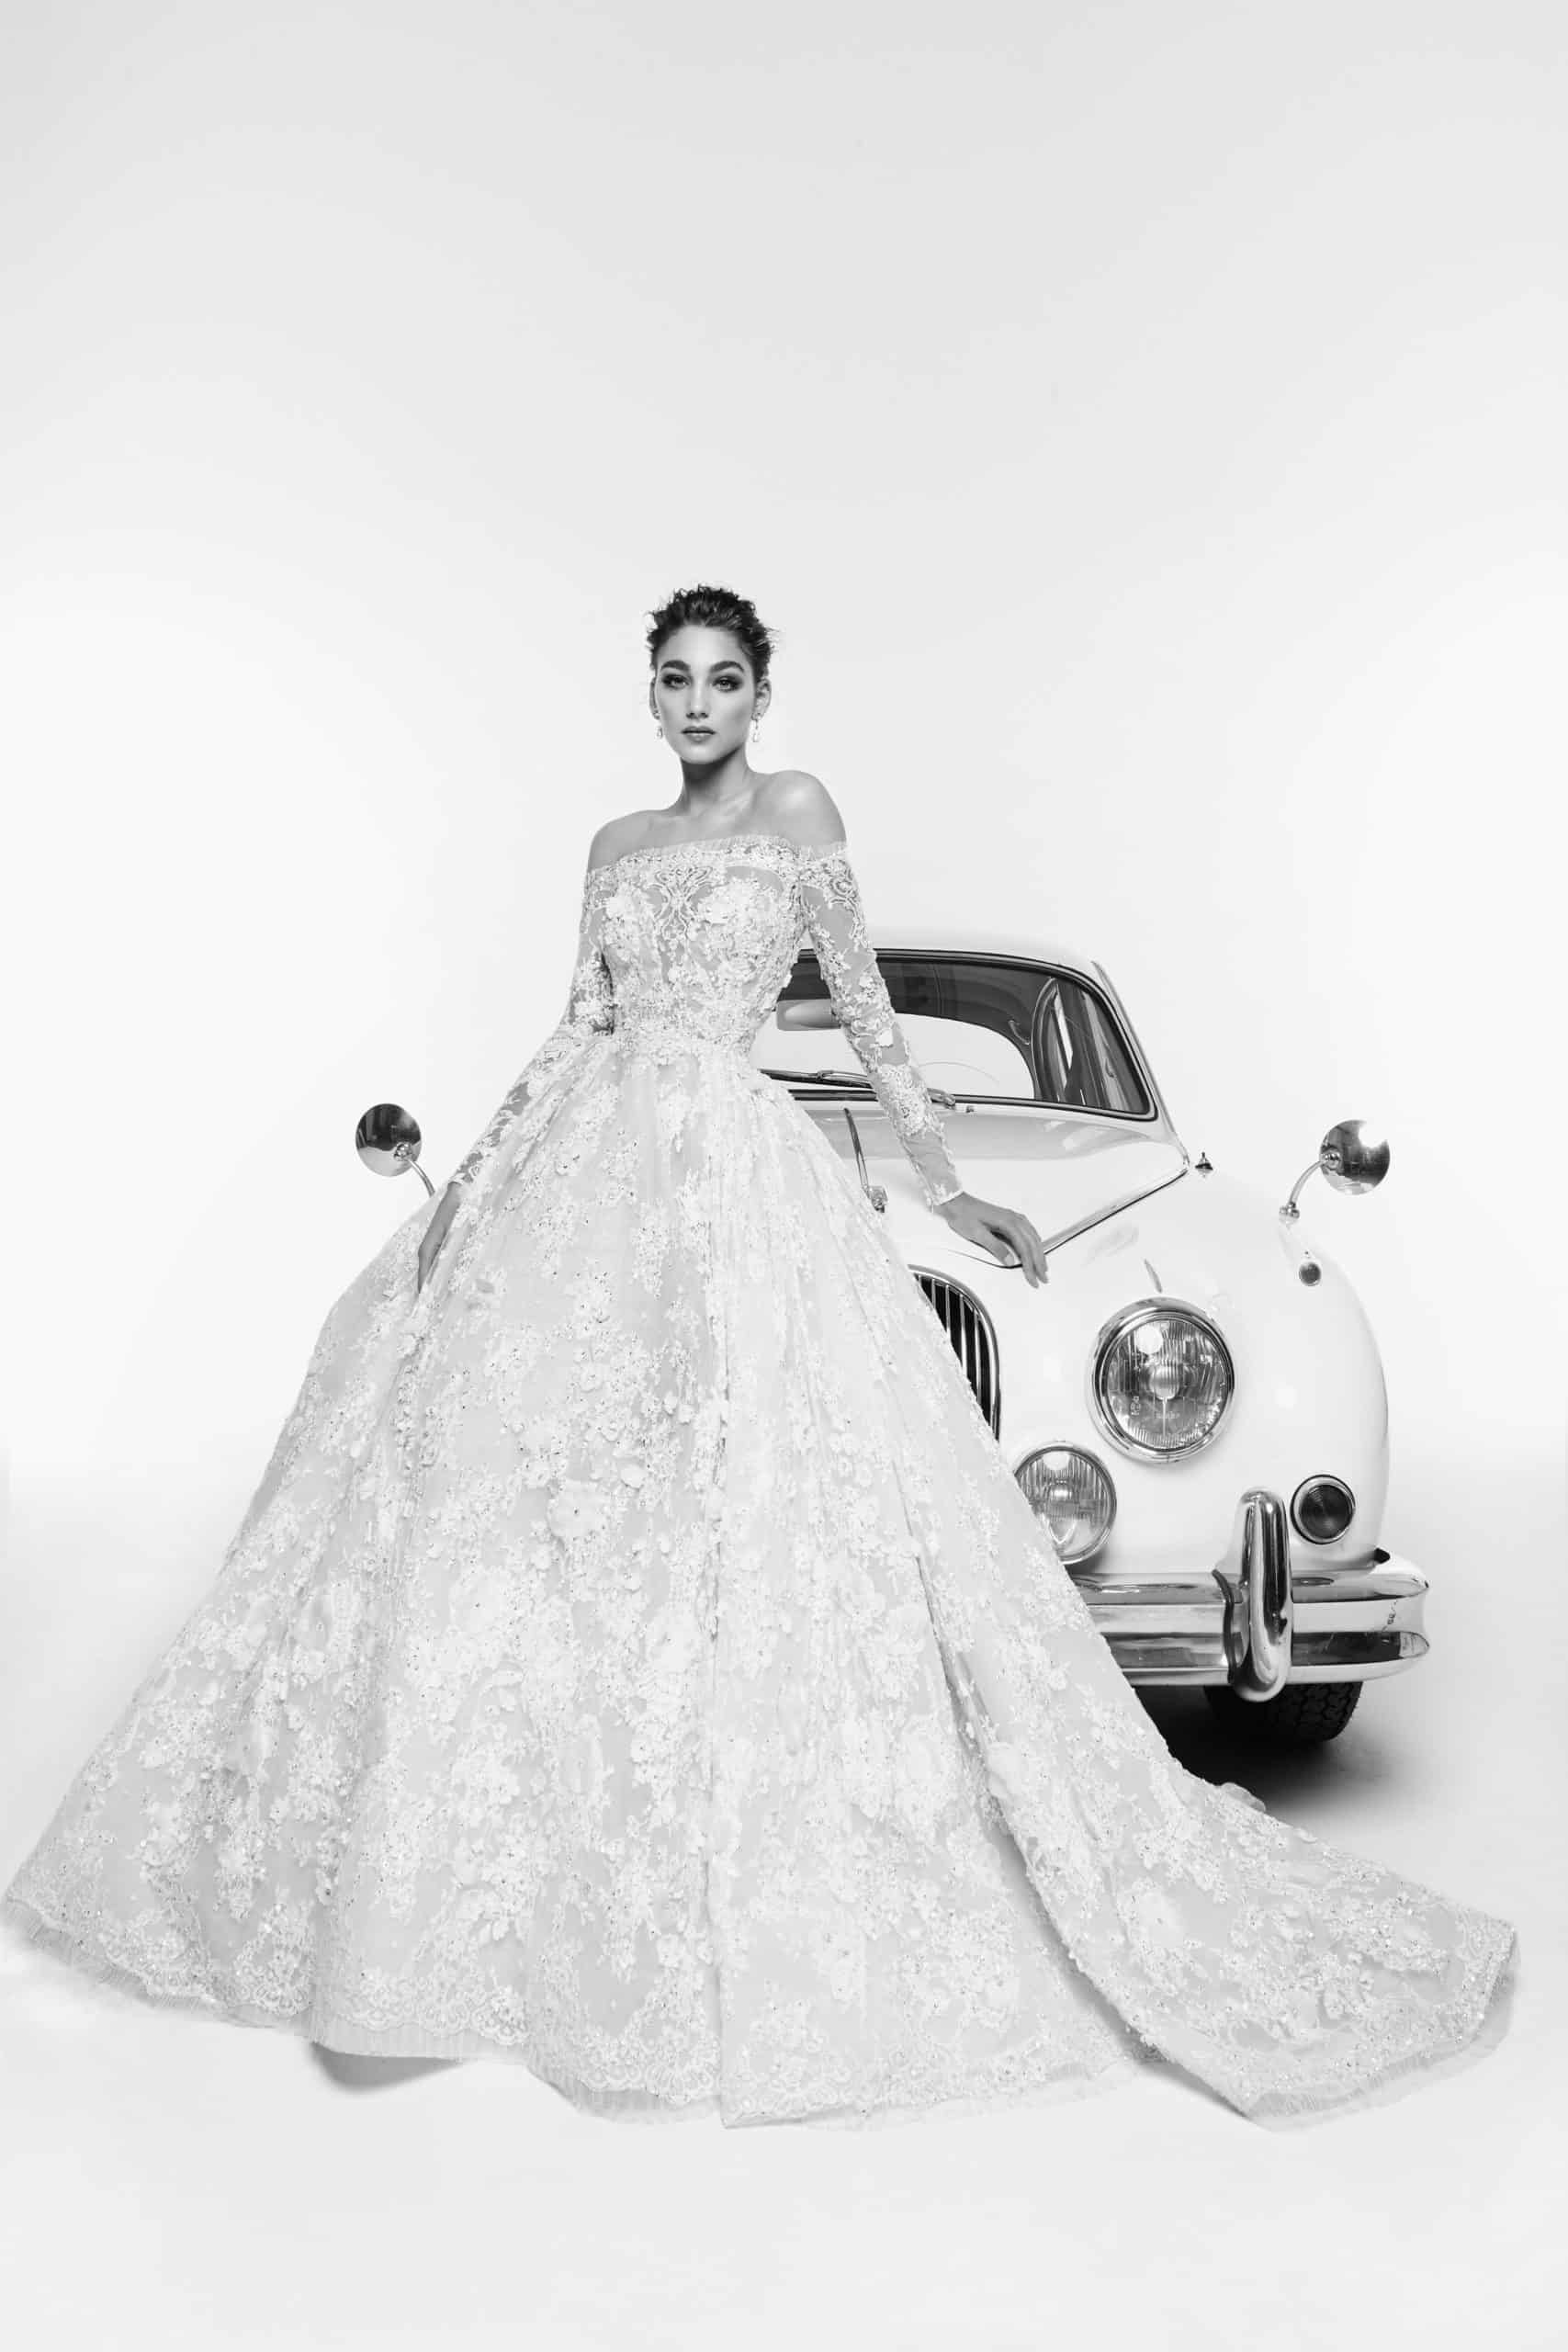 a-line wedding dress with a heavy lace by Zuhair Murad